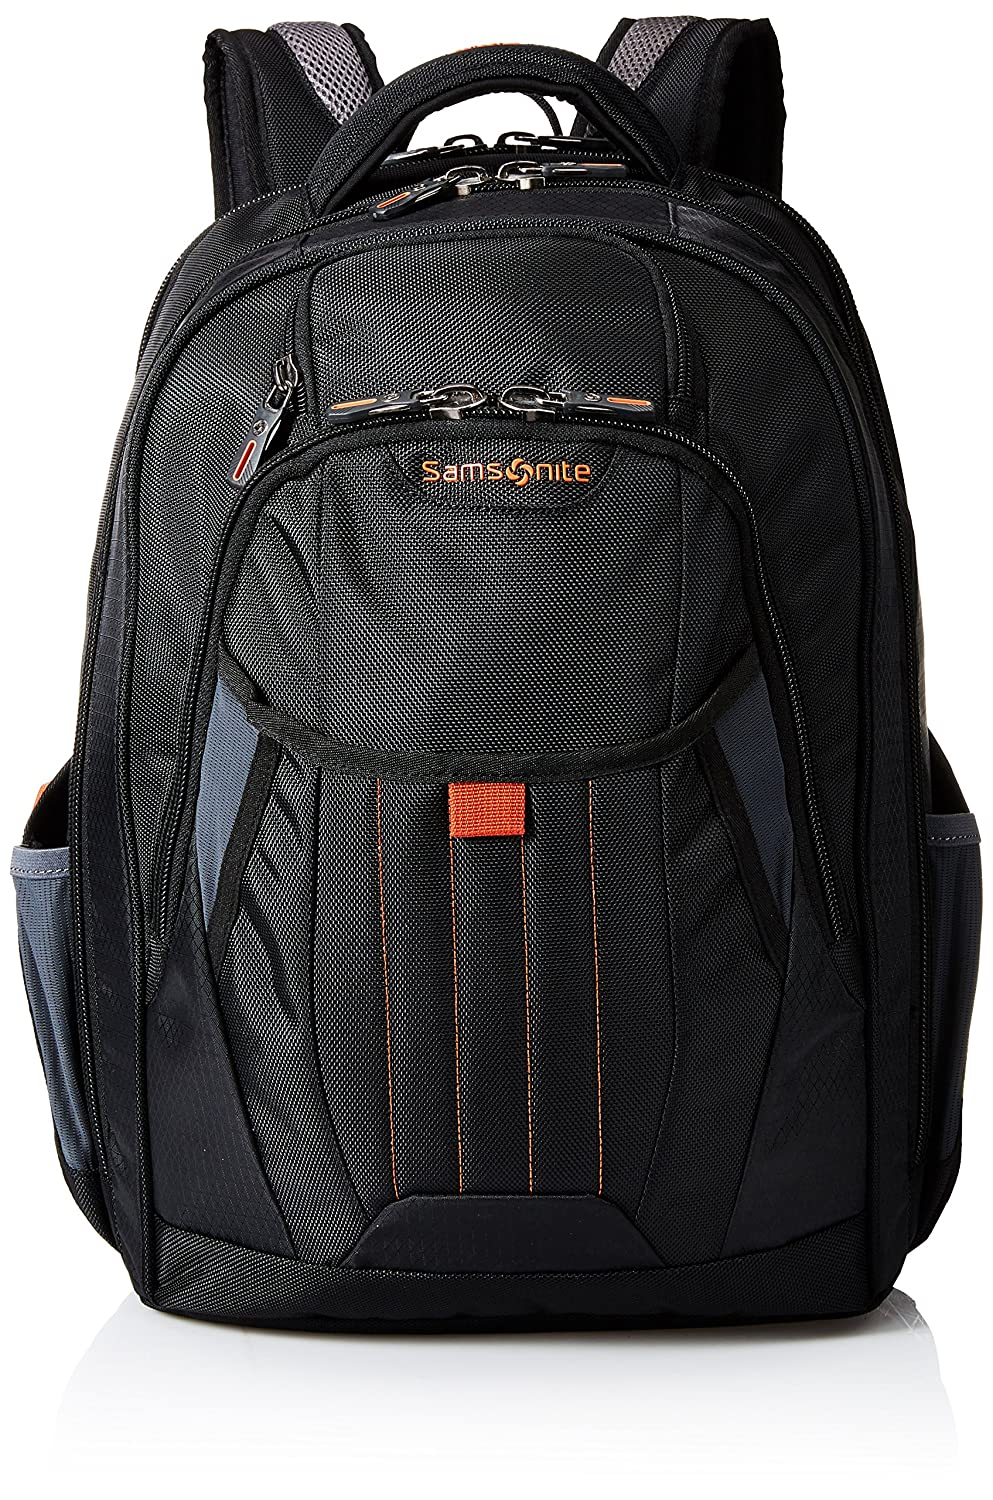 $54.58 (was $110) Samsonite Tectonic 2 Laptop Large Backpack, Black/Orange, International Carry-On$